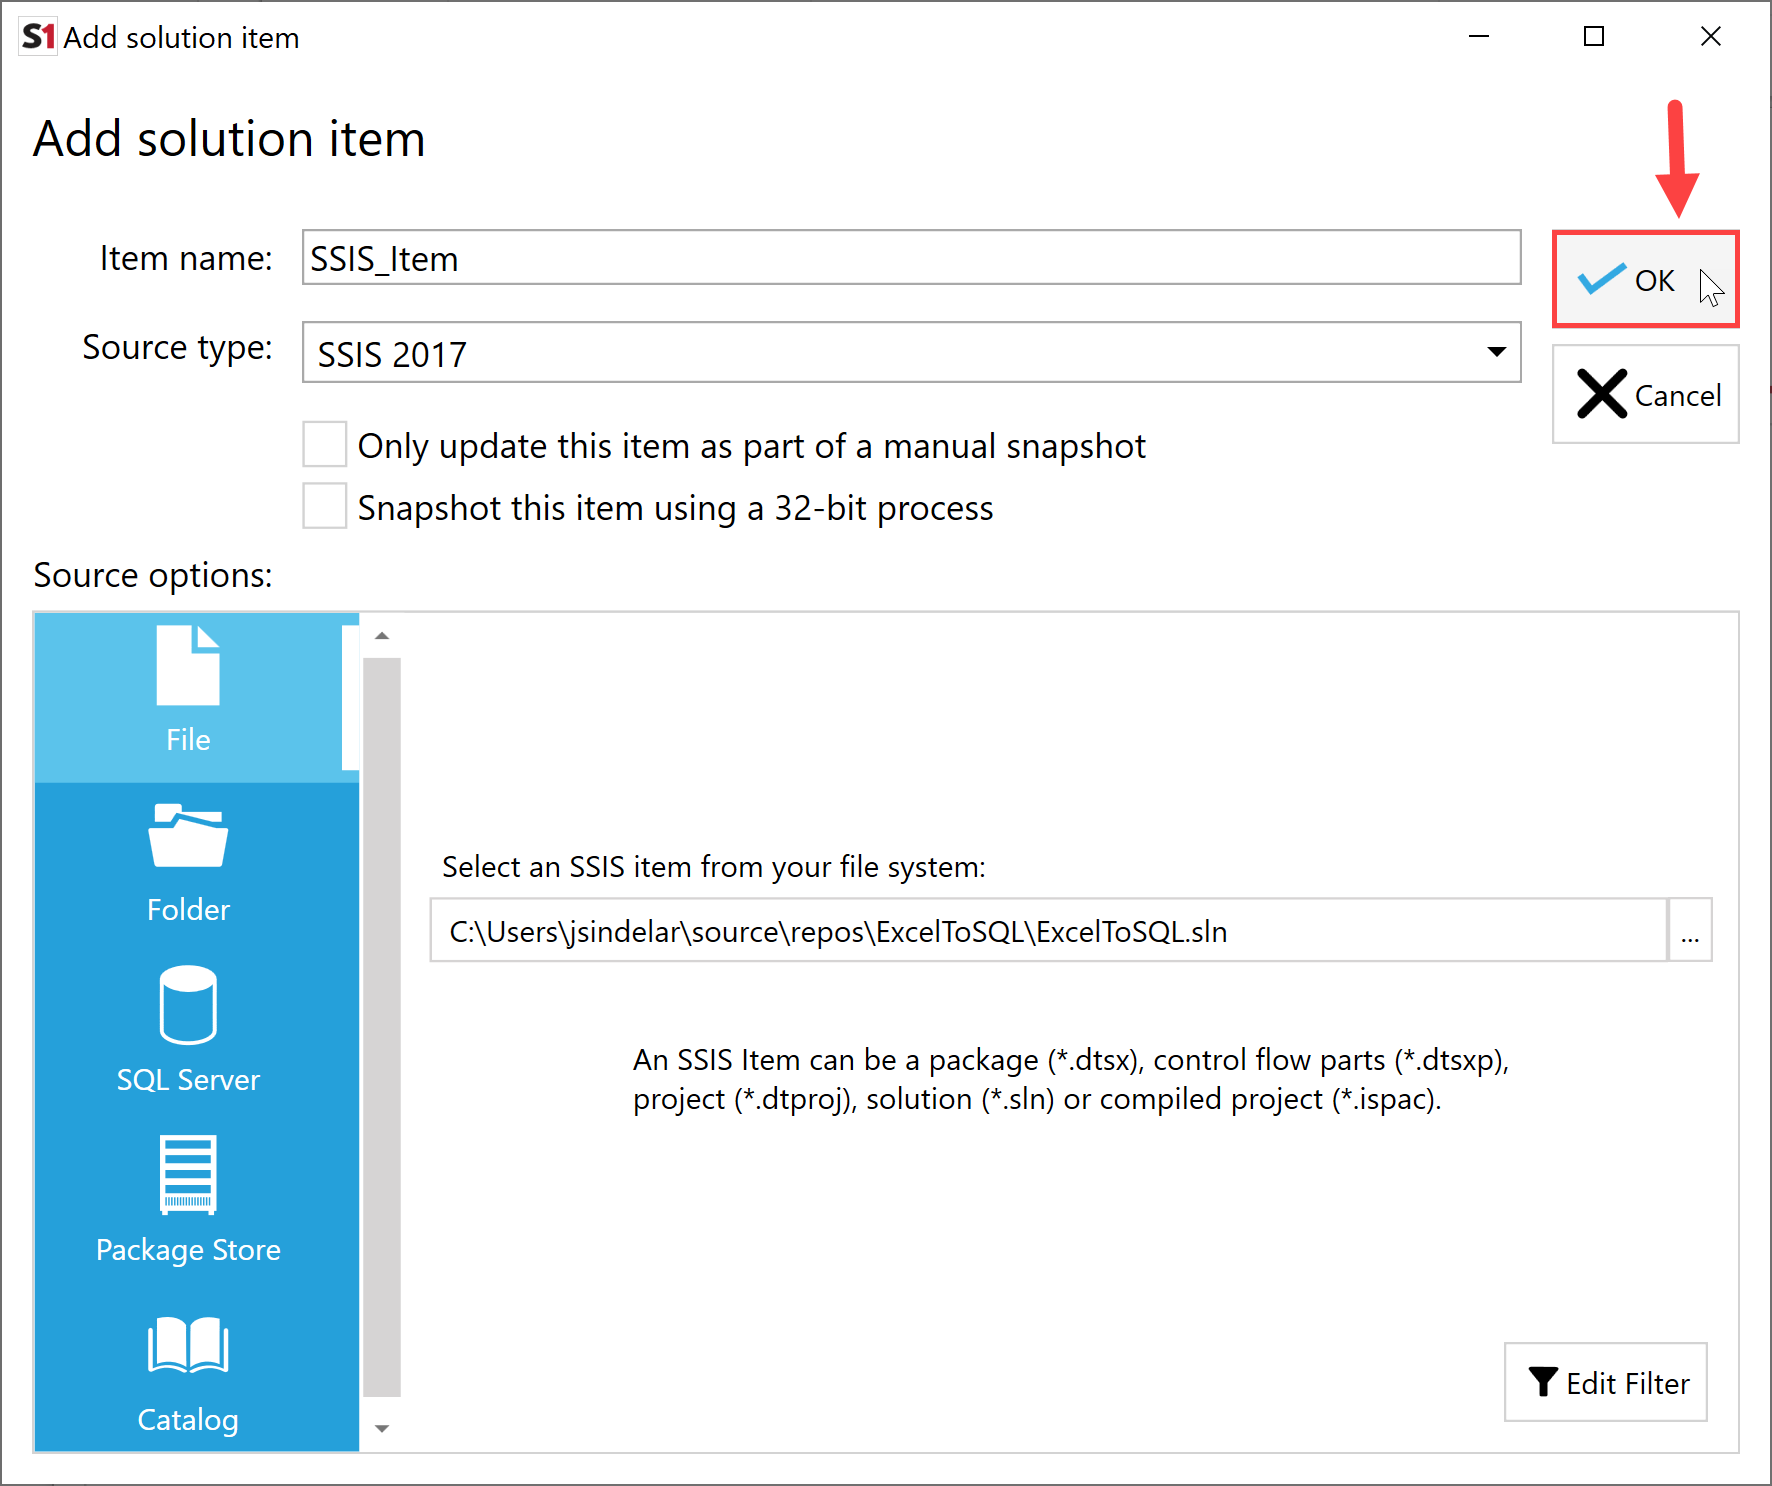 SentryOne Document Add Solution Item SSIS select Ok